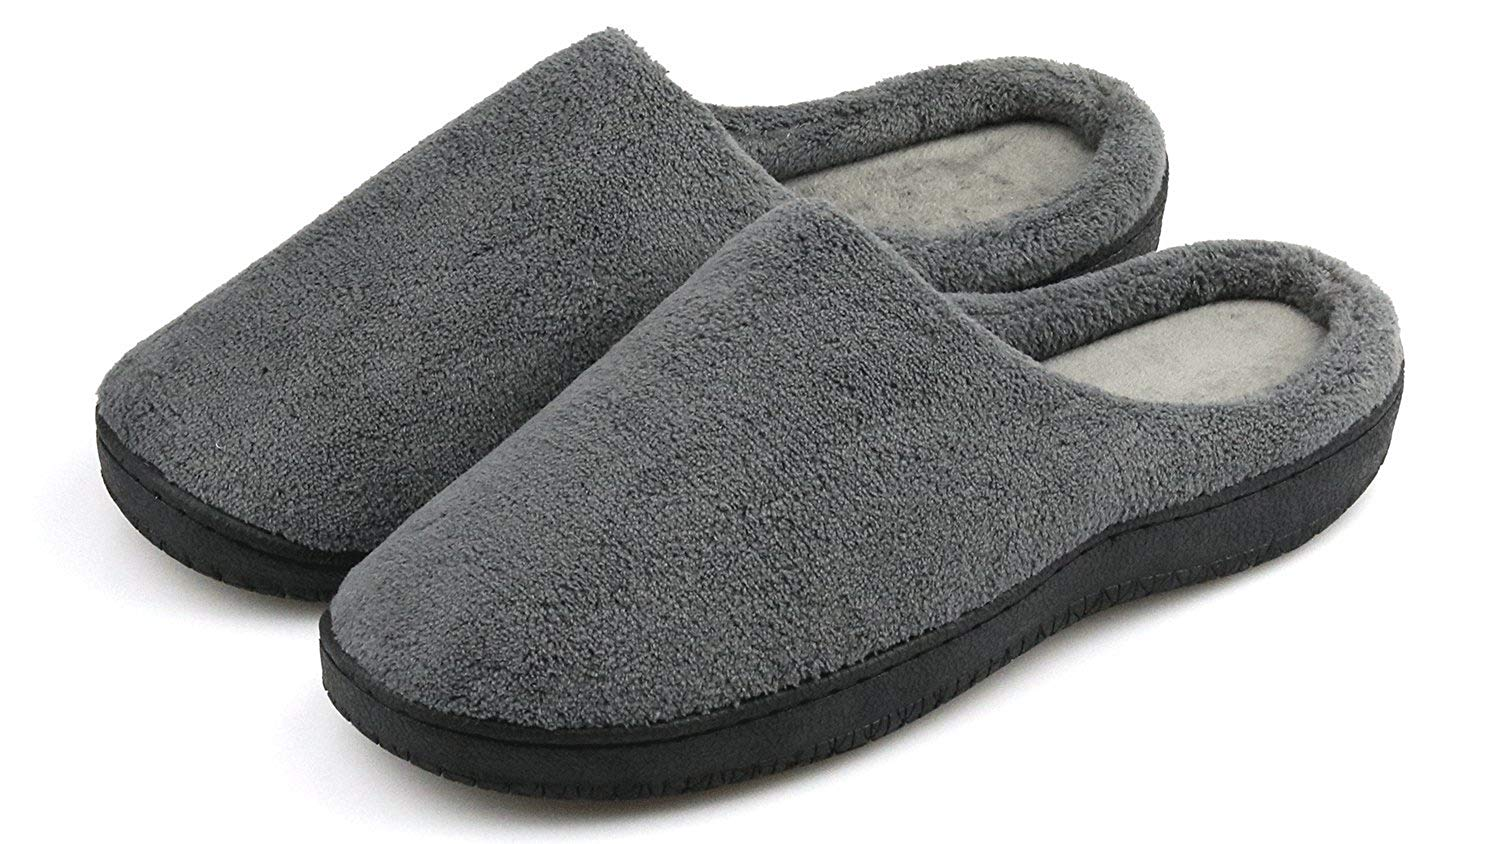 3a9bd624319 Get Quotations · Men s Slippers Memory Foam Warm Winter Slip On Daily  Slippers Soft Fleece House Slippers Indoor Outdoor